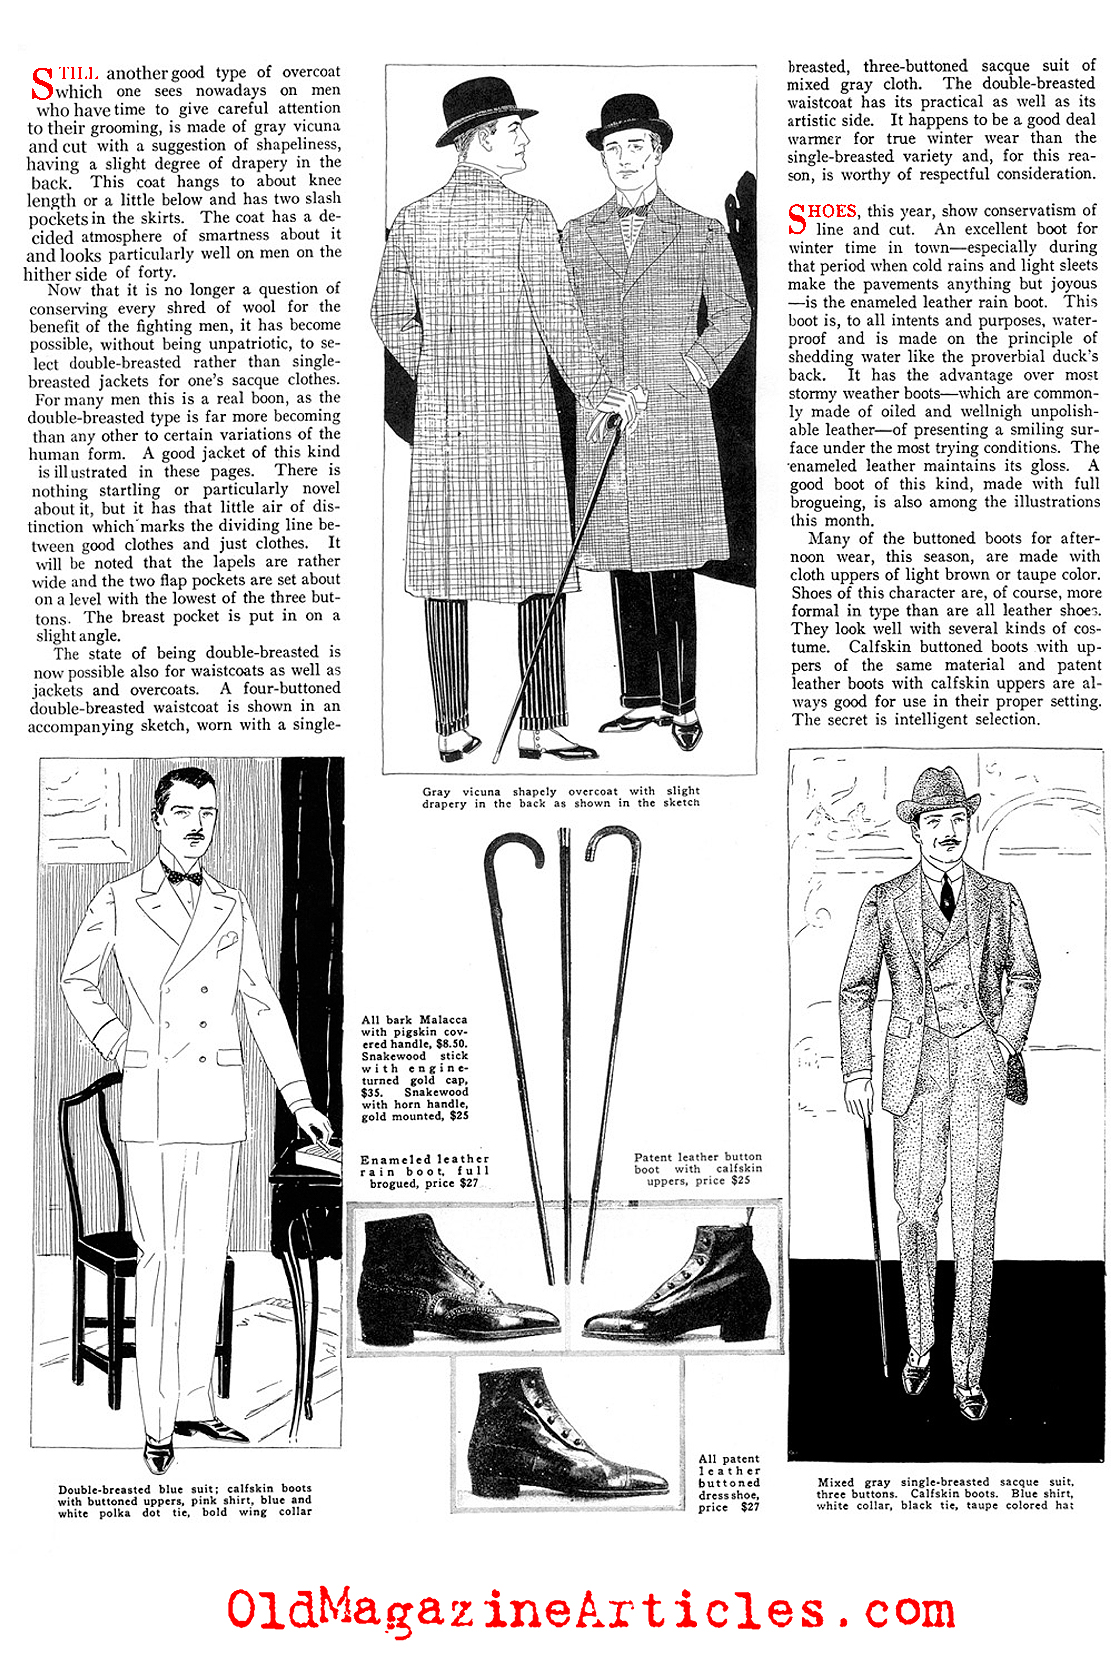 The Well Dressed Man in February (Vanity Fair Magazine, 1919)